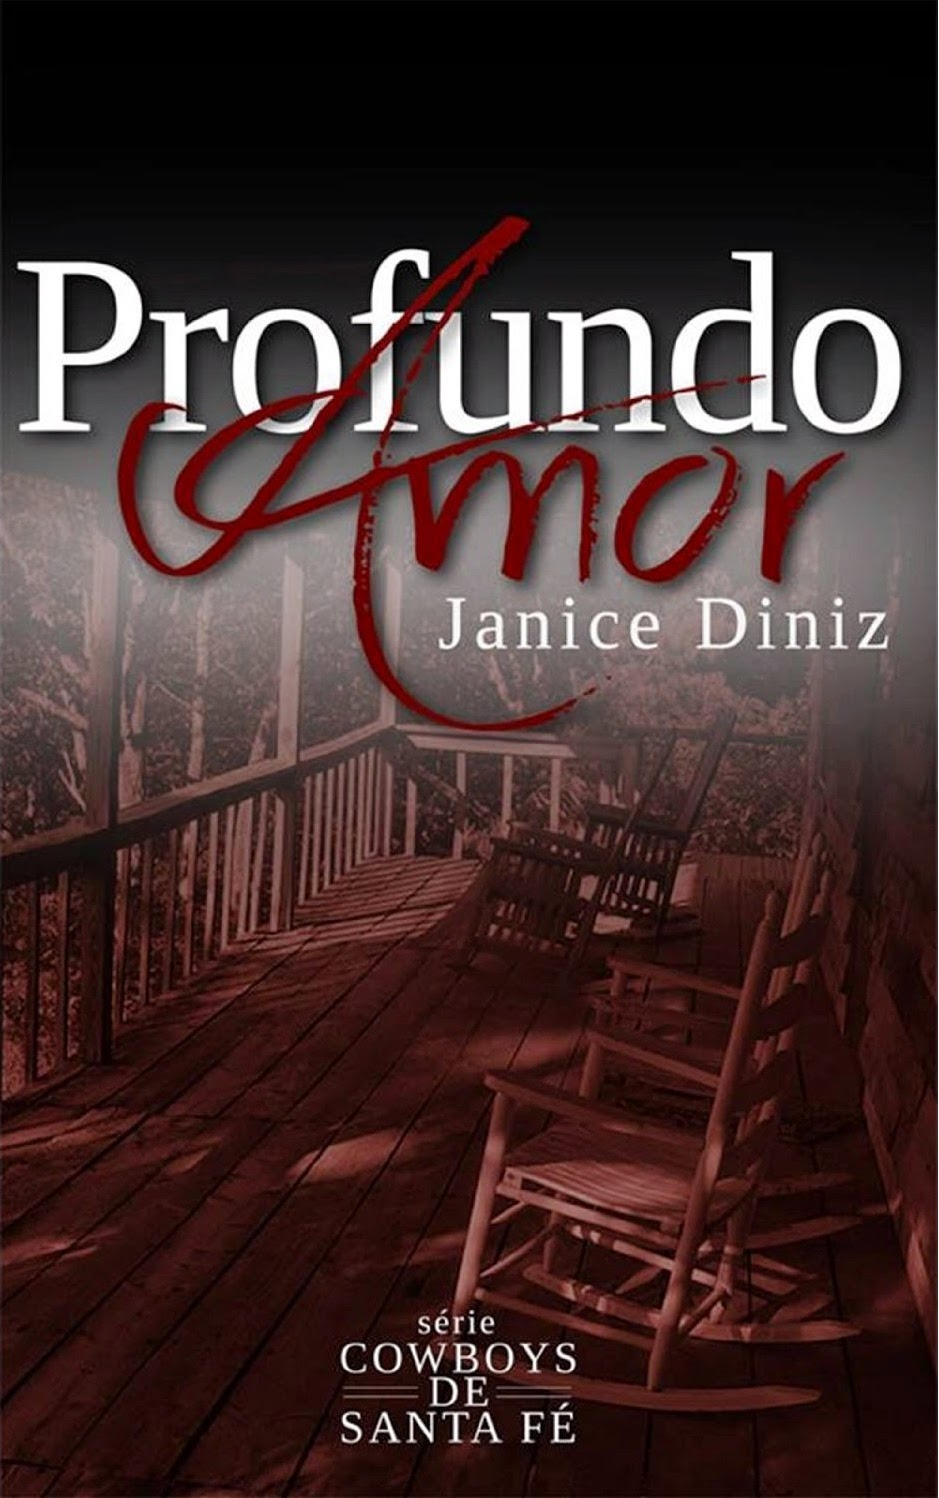 http://www.amazon.com.br/Profundo-Amor-Janice-Diniz-ebook/dp/B00LB9CVQA/ref=sr_1_5?ie=UTF8&qid=1413375252&sr=8-5&keywords=janice+diniz